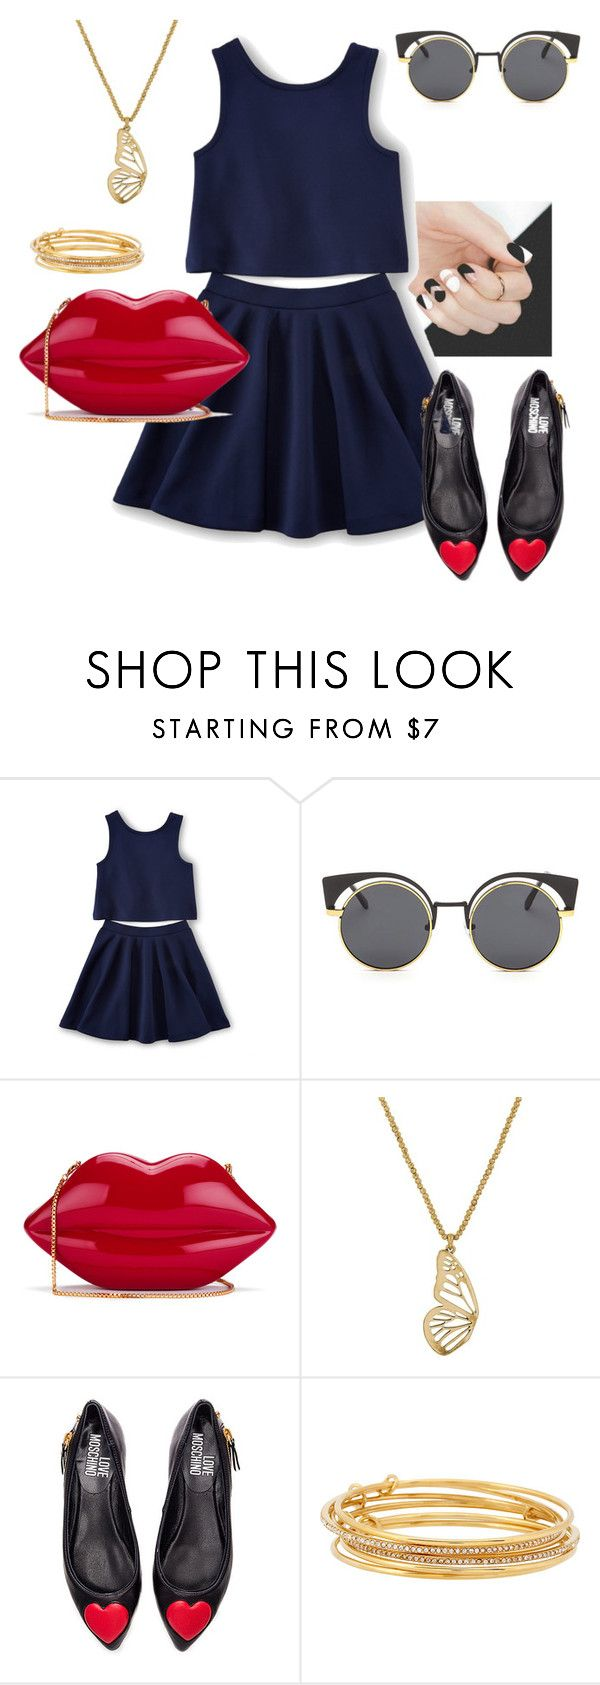 """Last of the Summer Days"" by emma-oloughlin ❤ liked on Polyvore featuring Lulu Guinness, Lucky Brand, Love Moschino and Kate Spade"